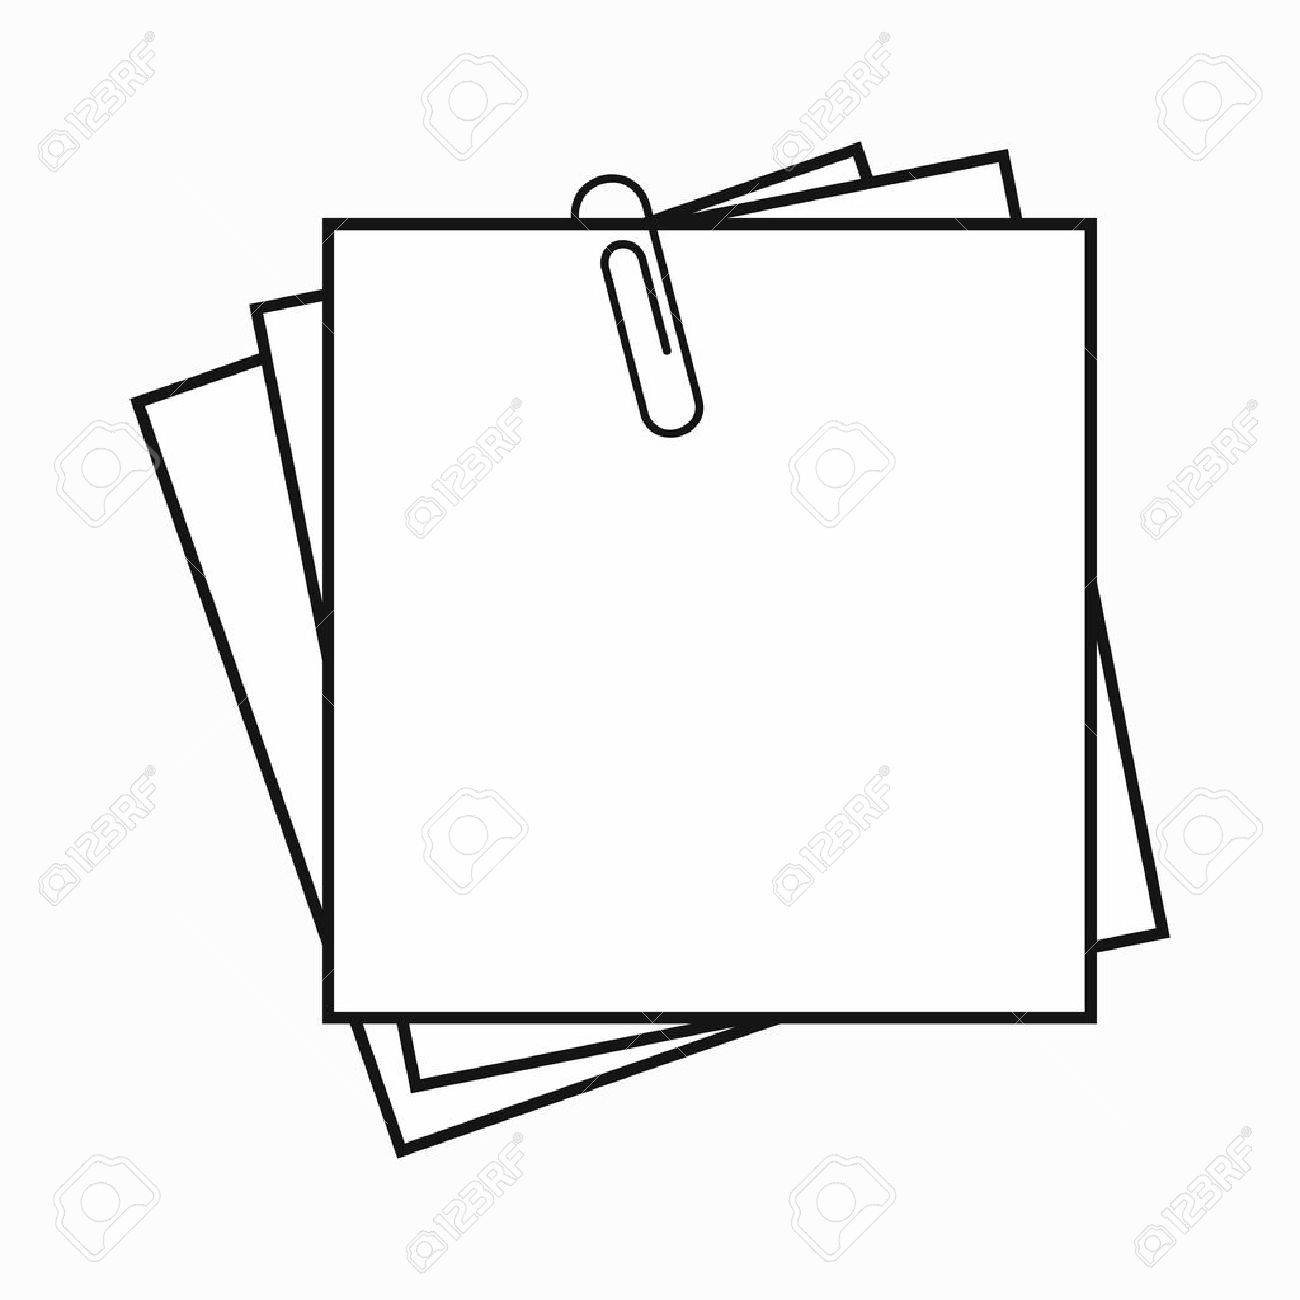 TOCados estamos. 54867173-sheet-of-paper-for-notes-and-paper-clip-icon-in-simple-style-on-a-white-background